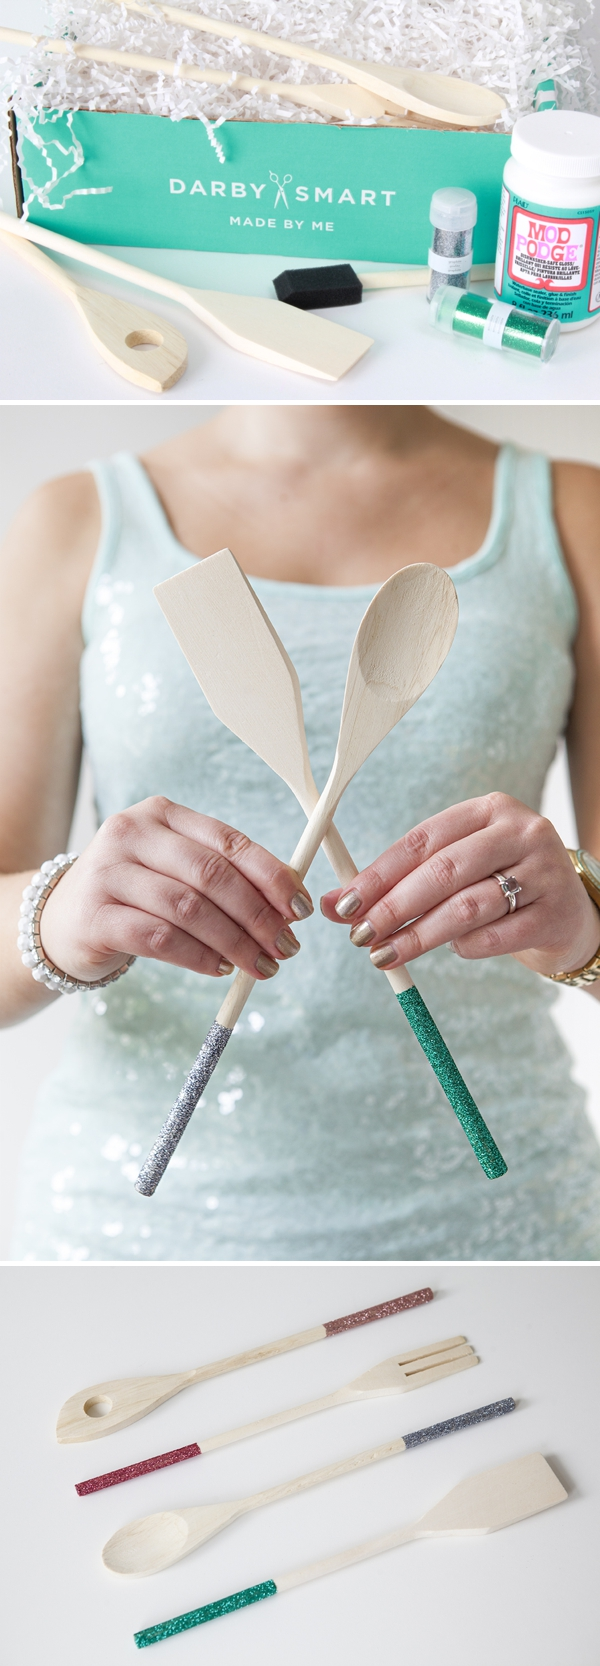 SomethingTurquoise_DIY_Glitter_Wooden_Spoons_Darby_Smart_0002.jpg